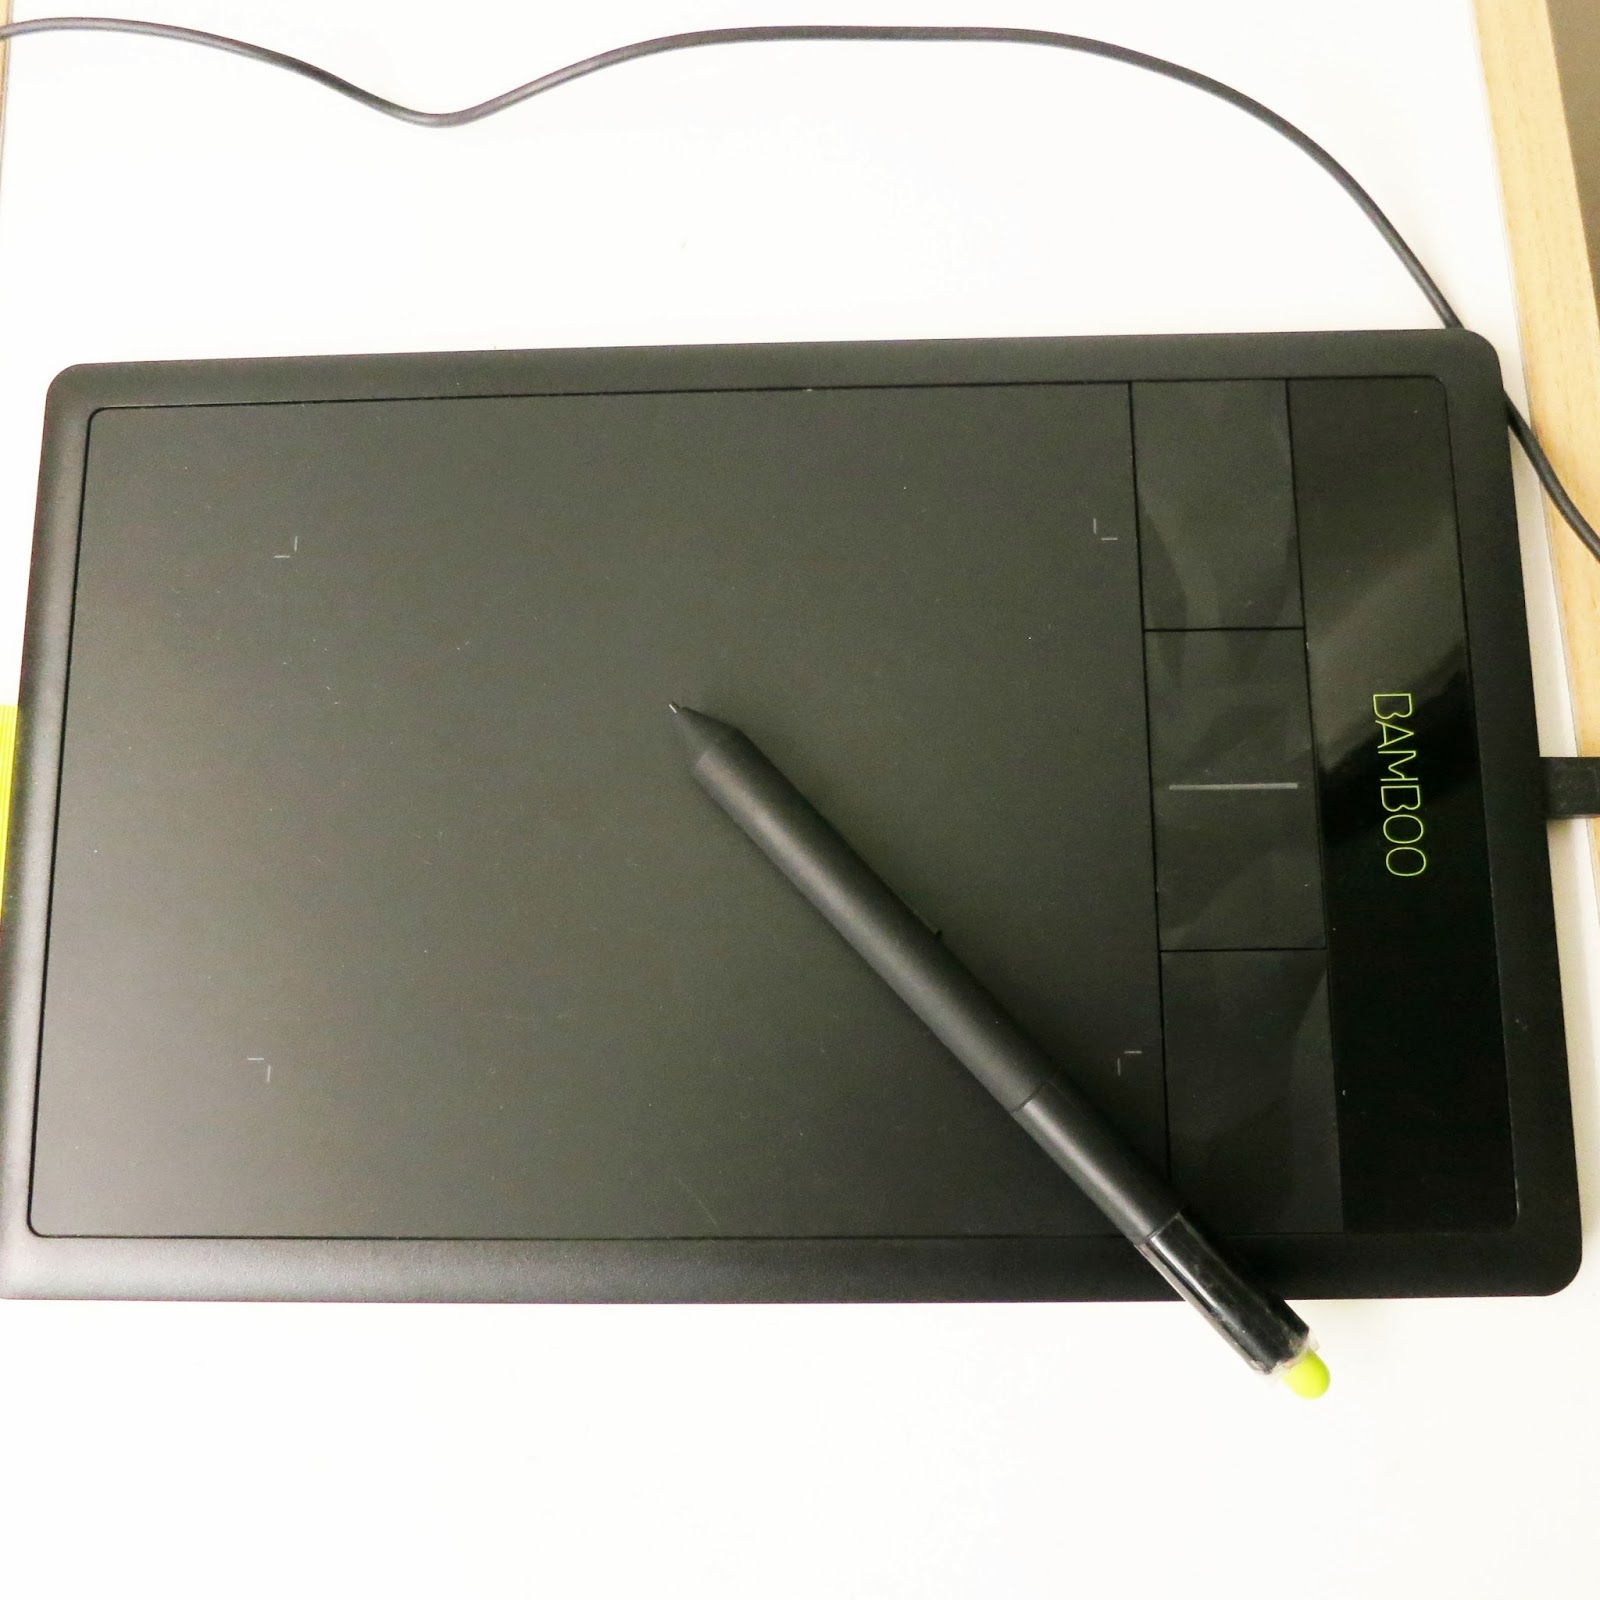 What tablet should I buy for my needs?